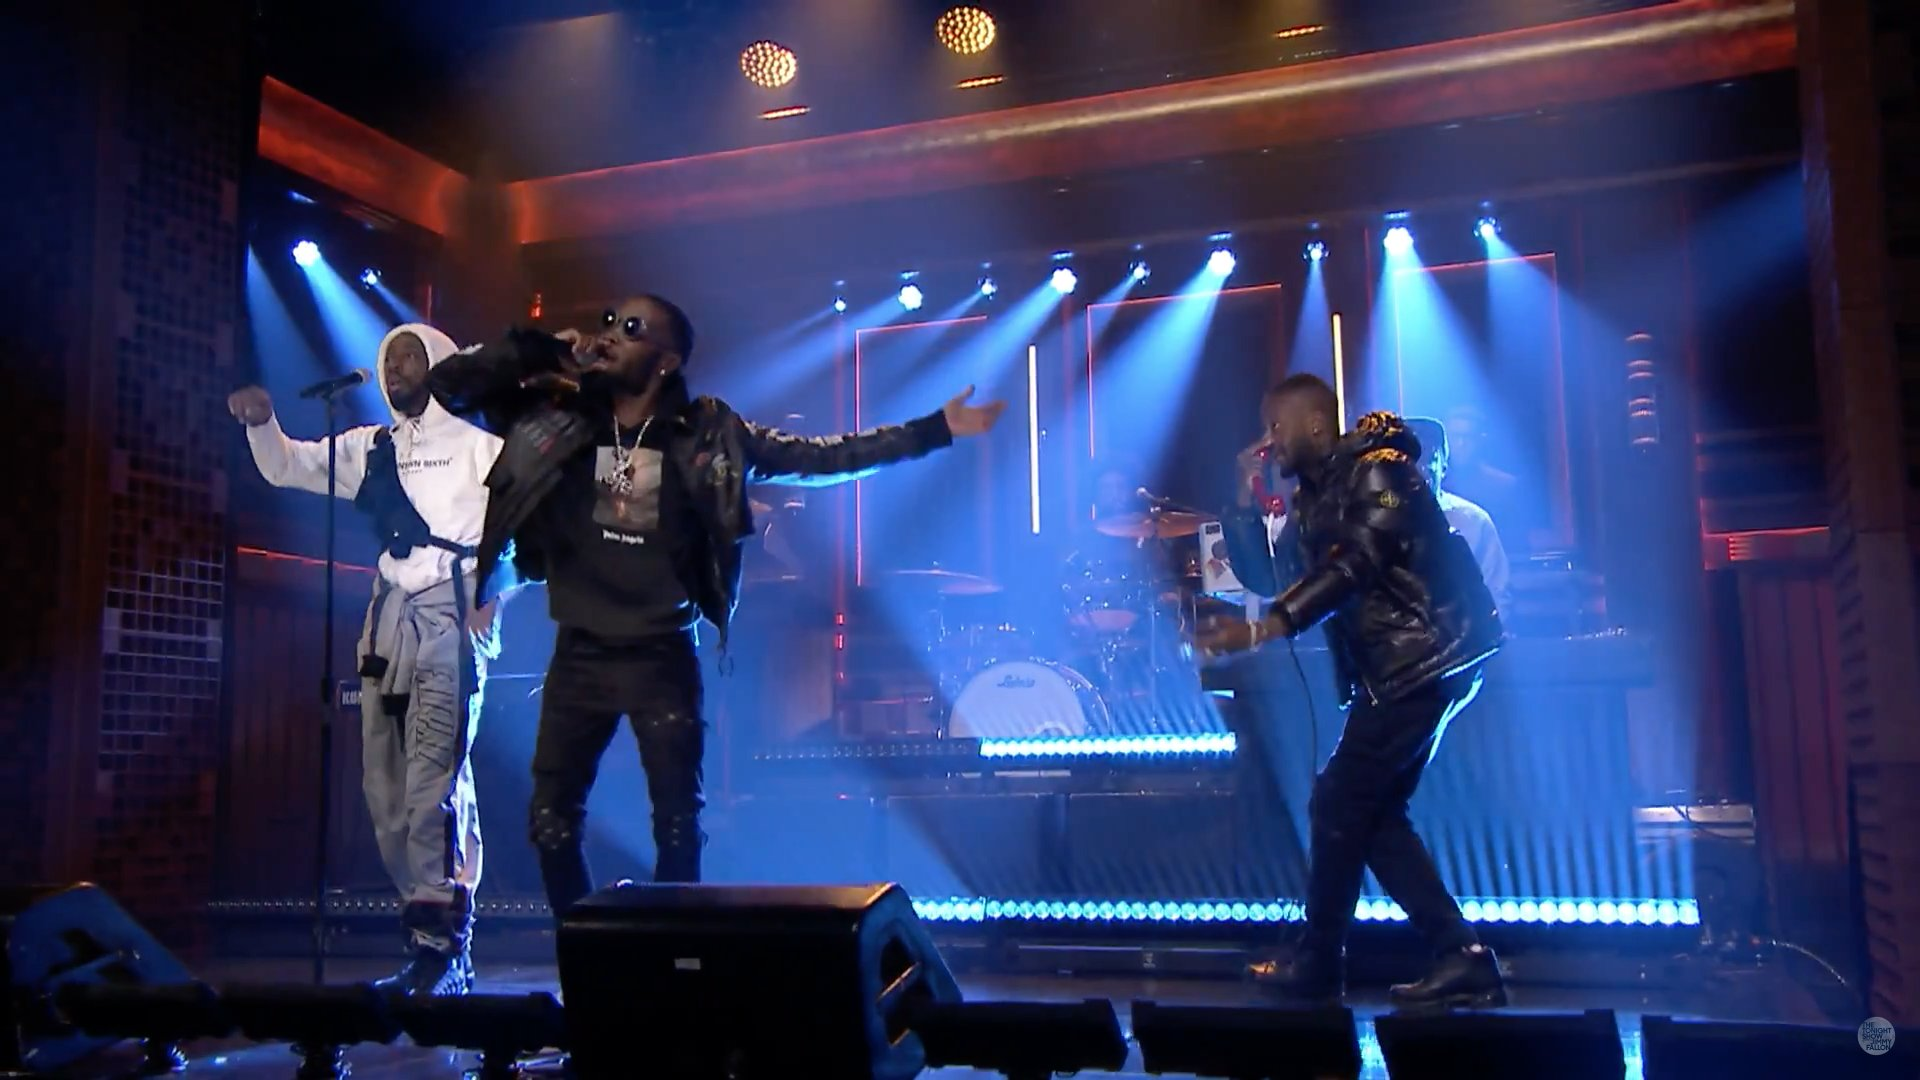 Watch @Goldlink perform his platinum selling single 'Crew' with @BrentFaiyaz and @ShyGlizzy. https://t.co/2bUdOaJy4R https://t.co/GPqQJzOXes